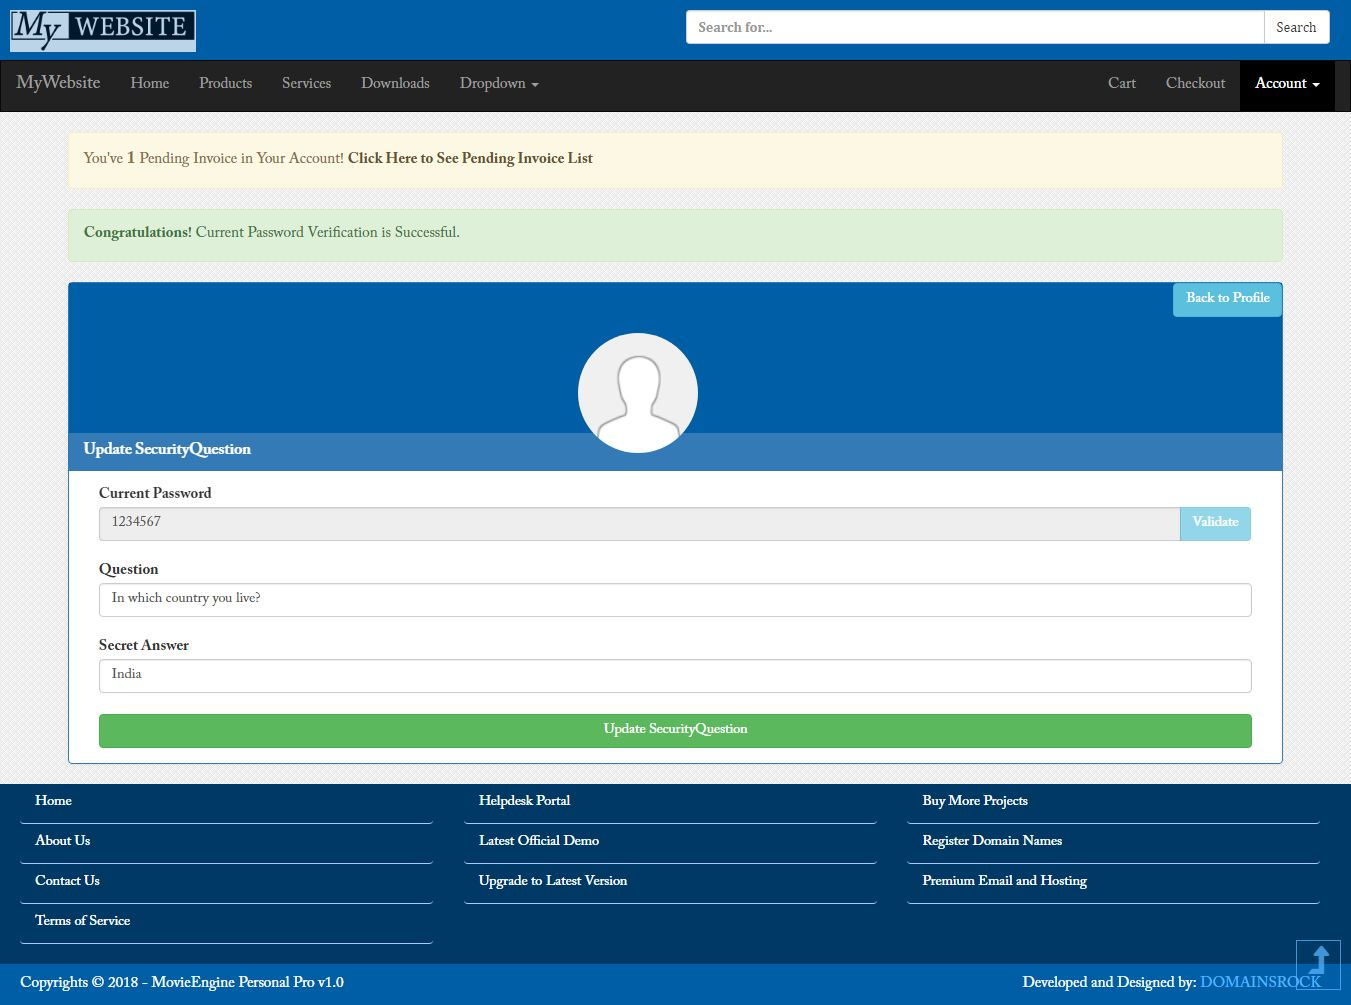 MyWebsite Pro - ASP.Net CMS Screenshot 18